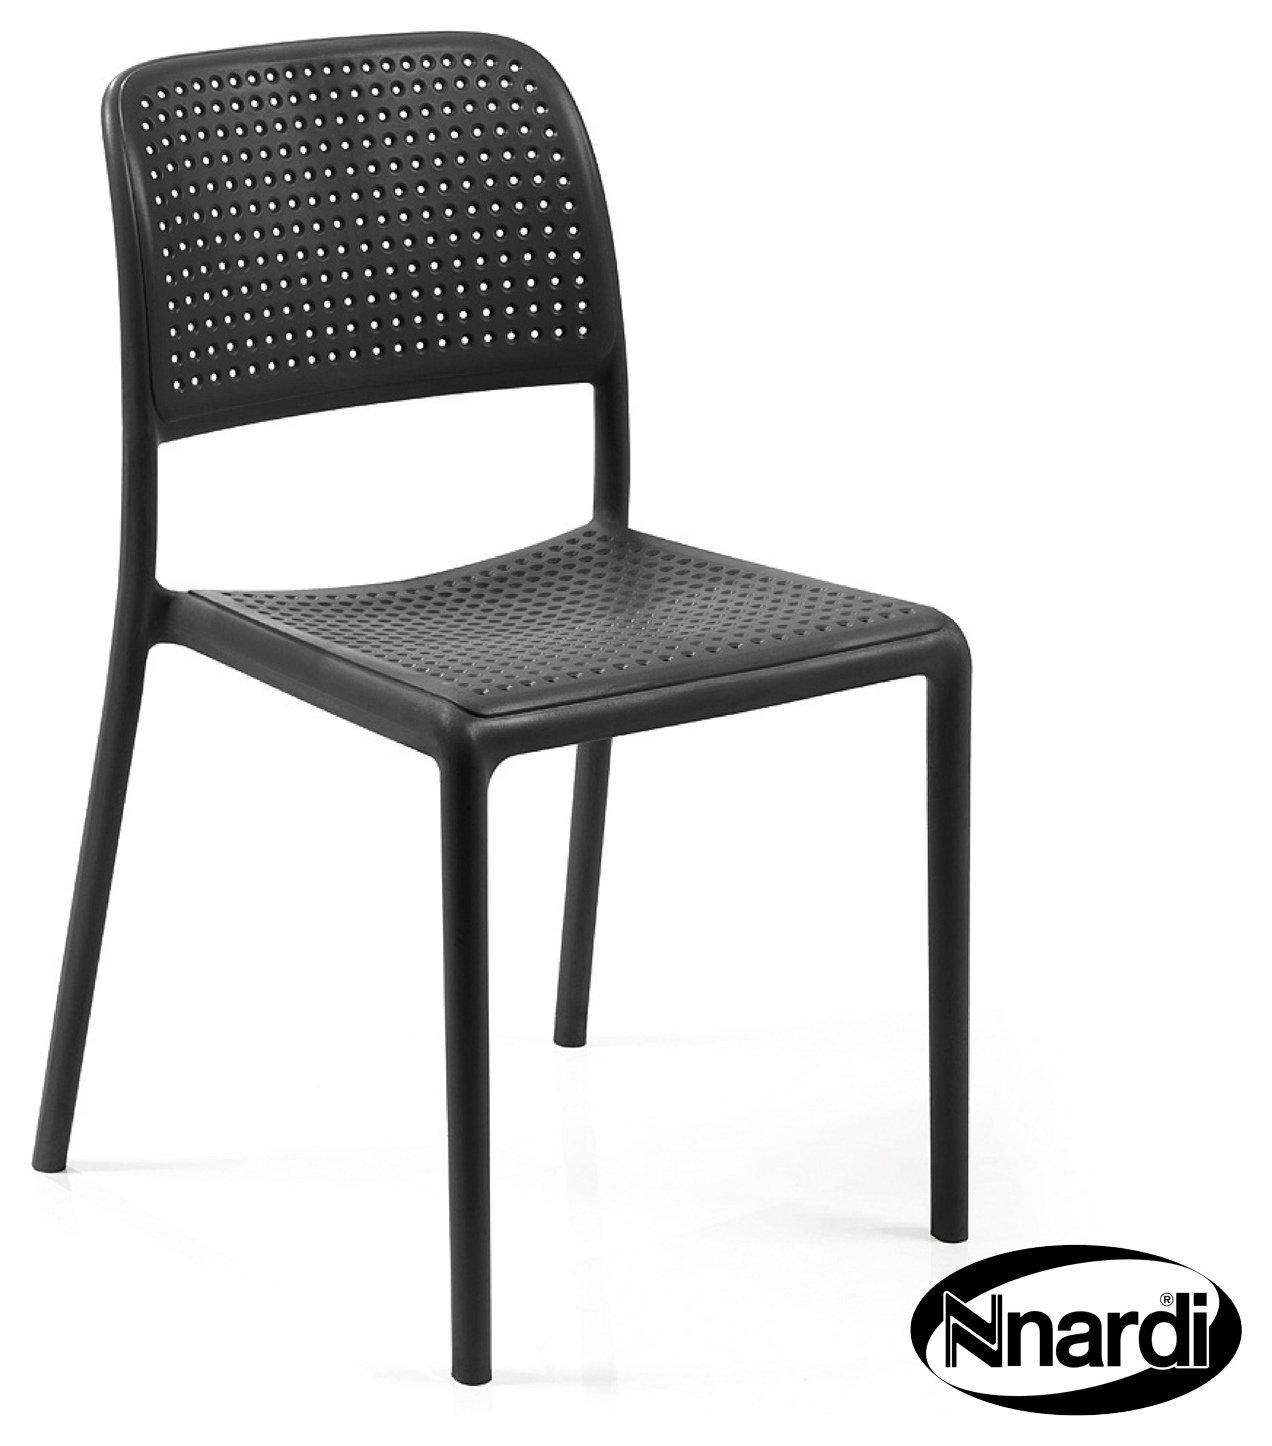 Nardi Anthracite Bistro Chair - Pack of 2. lowest price